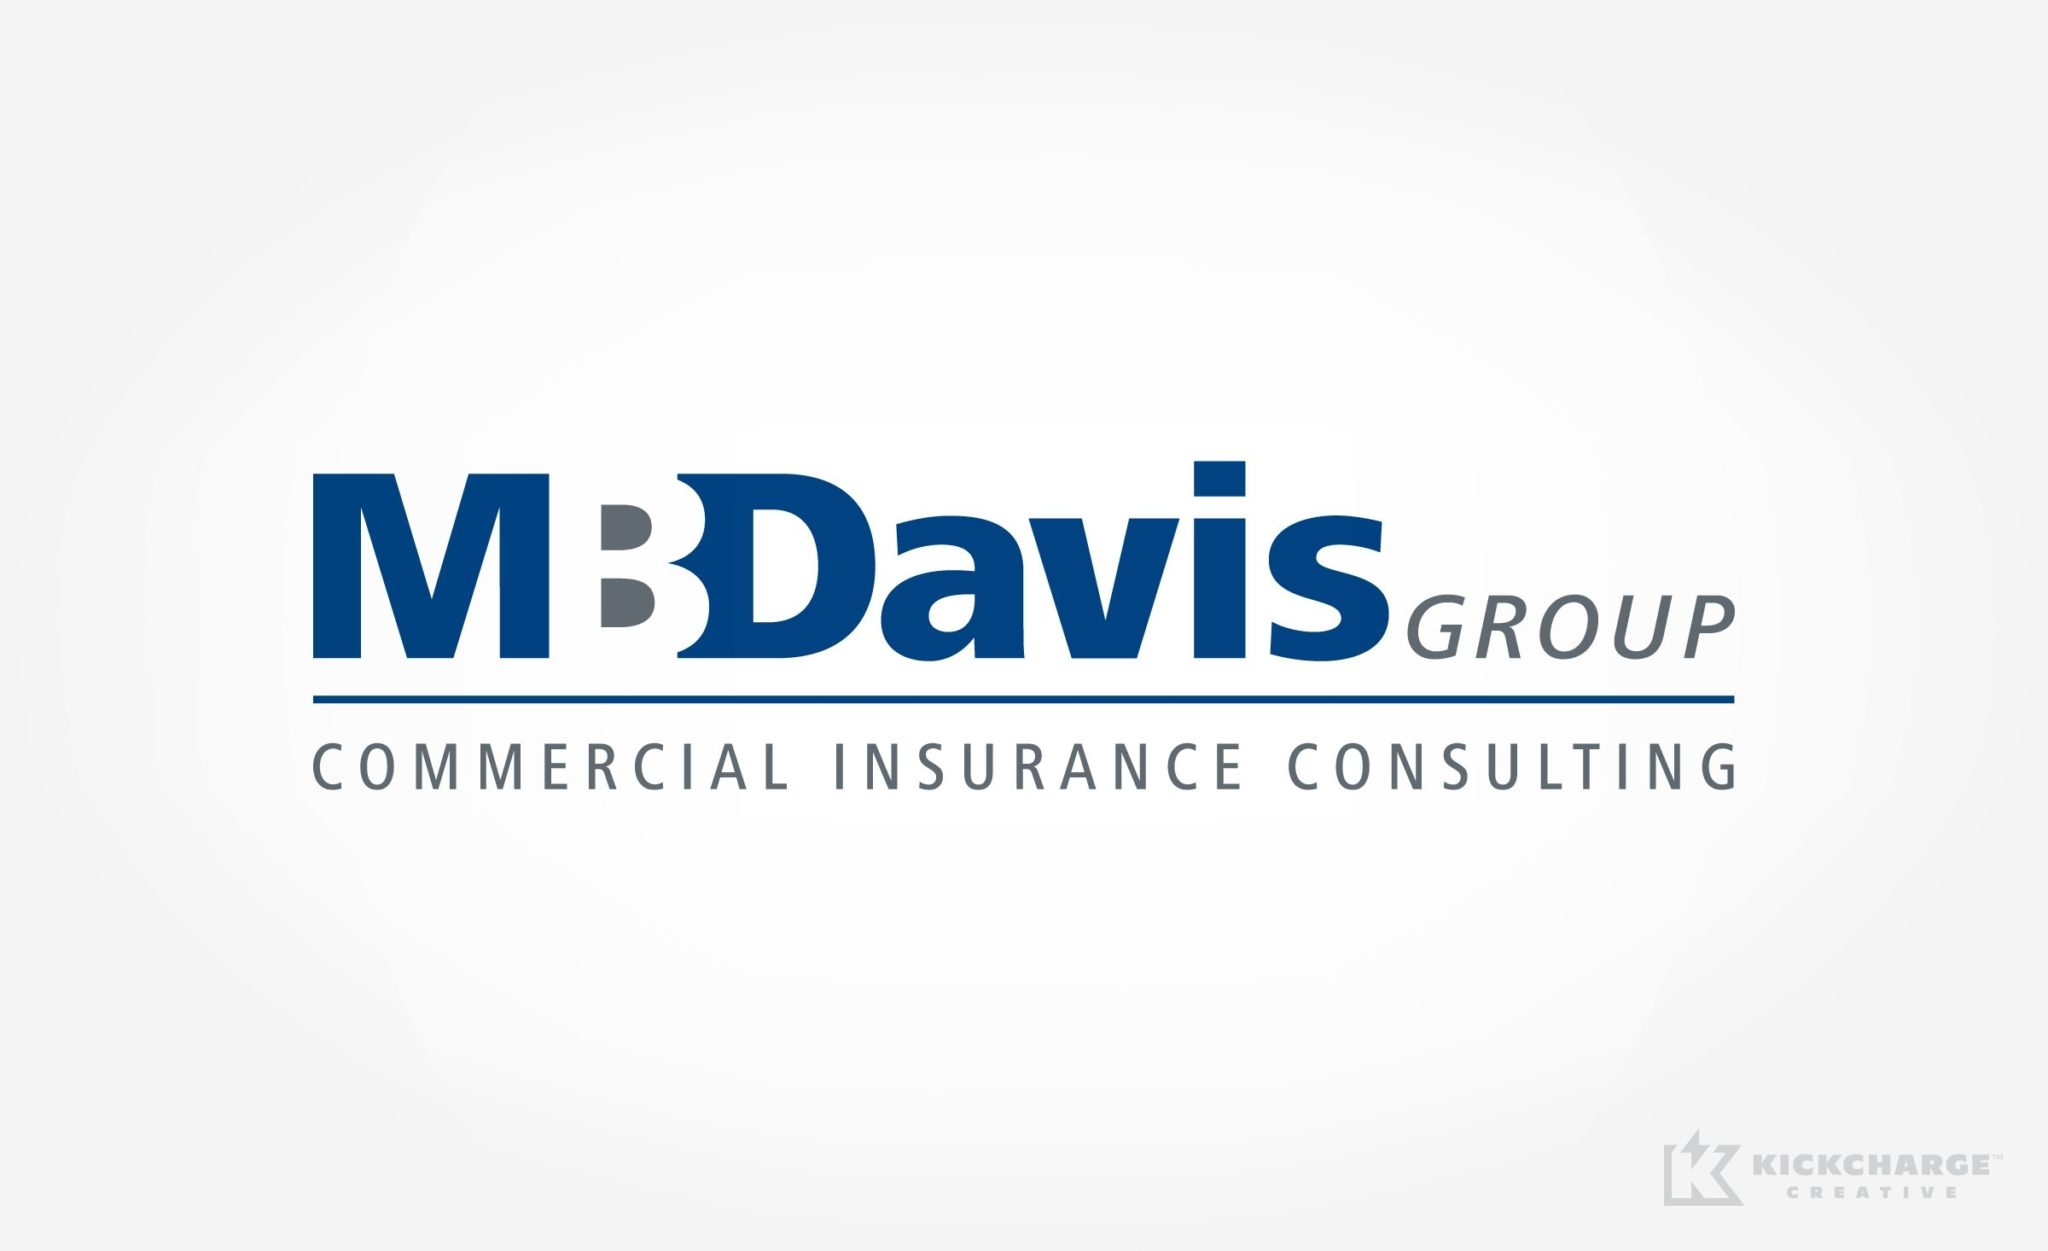 Logo design for an insurance consultant in Mt. Arlington, NJ.